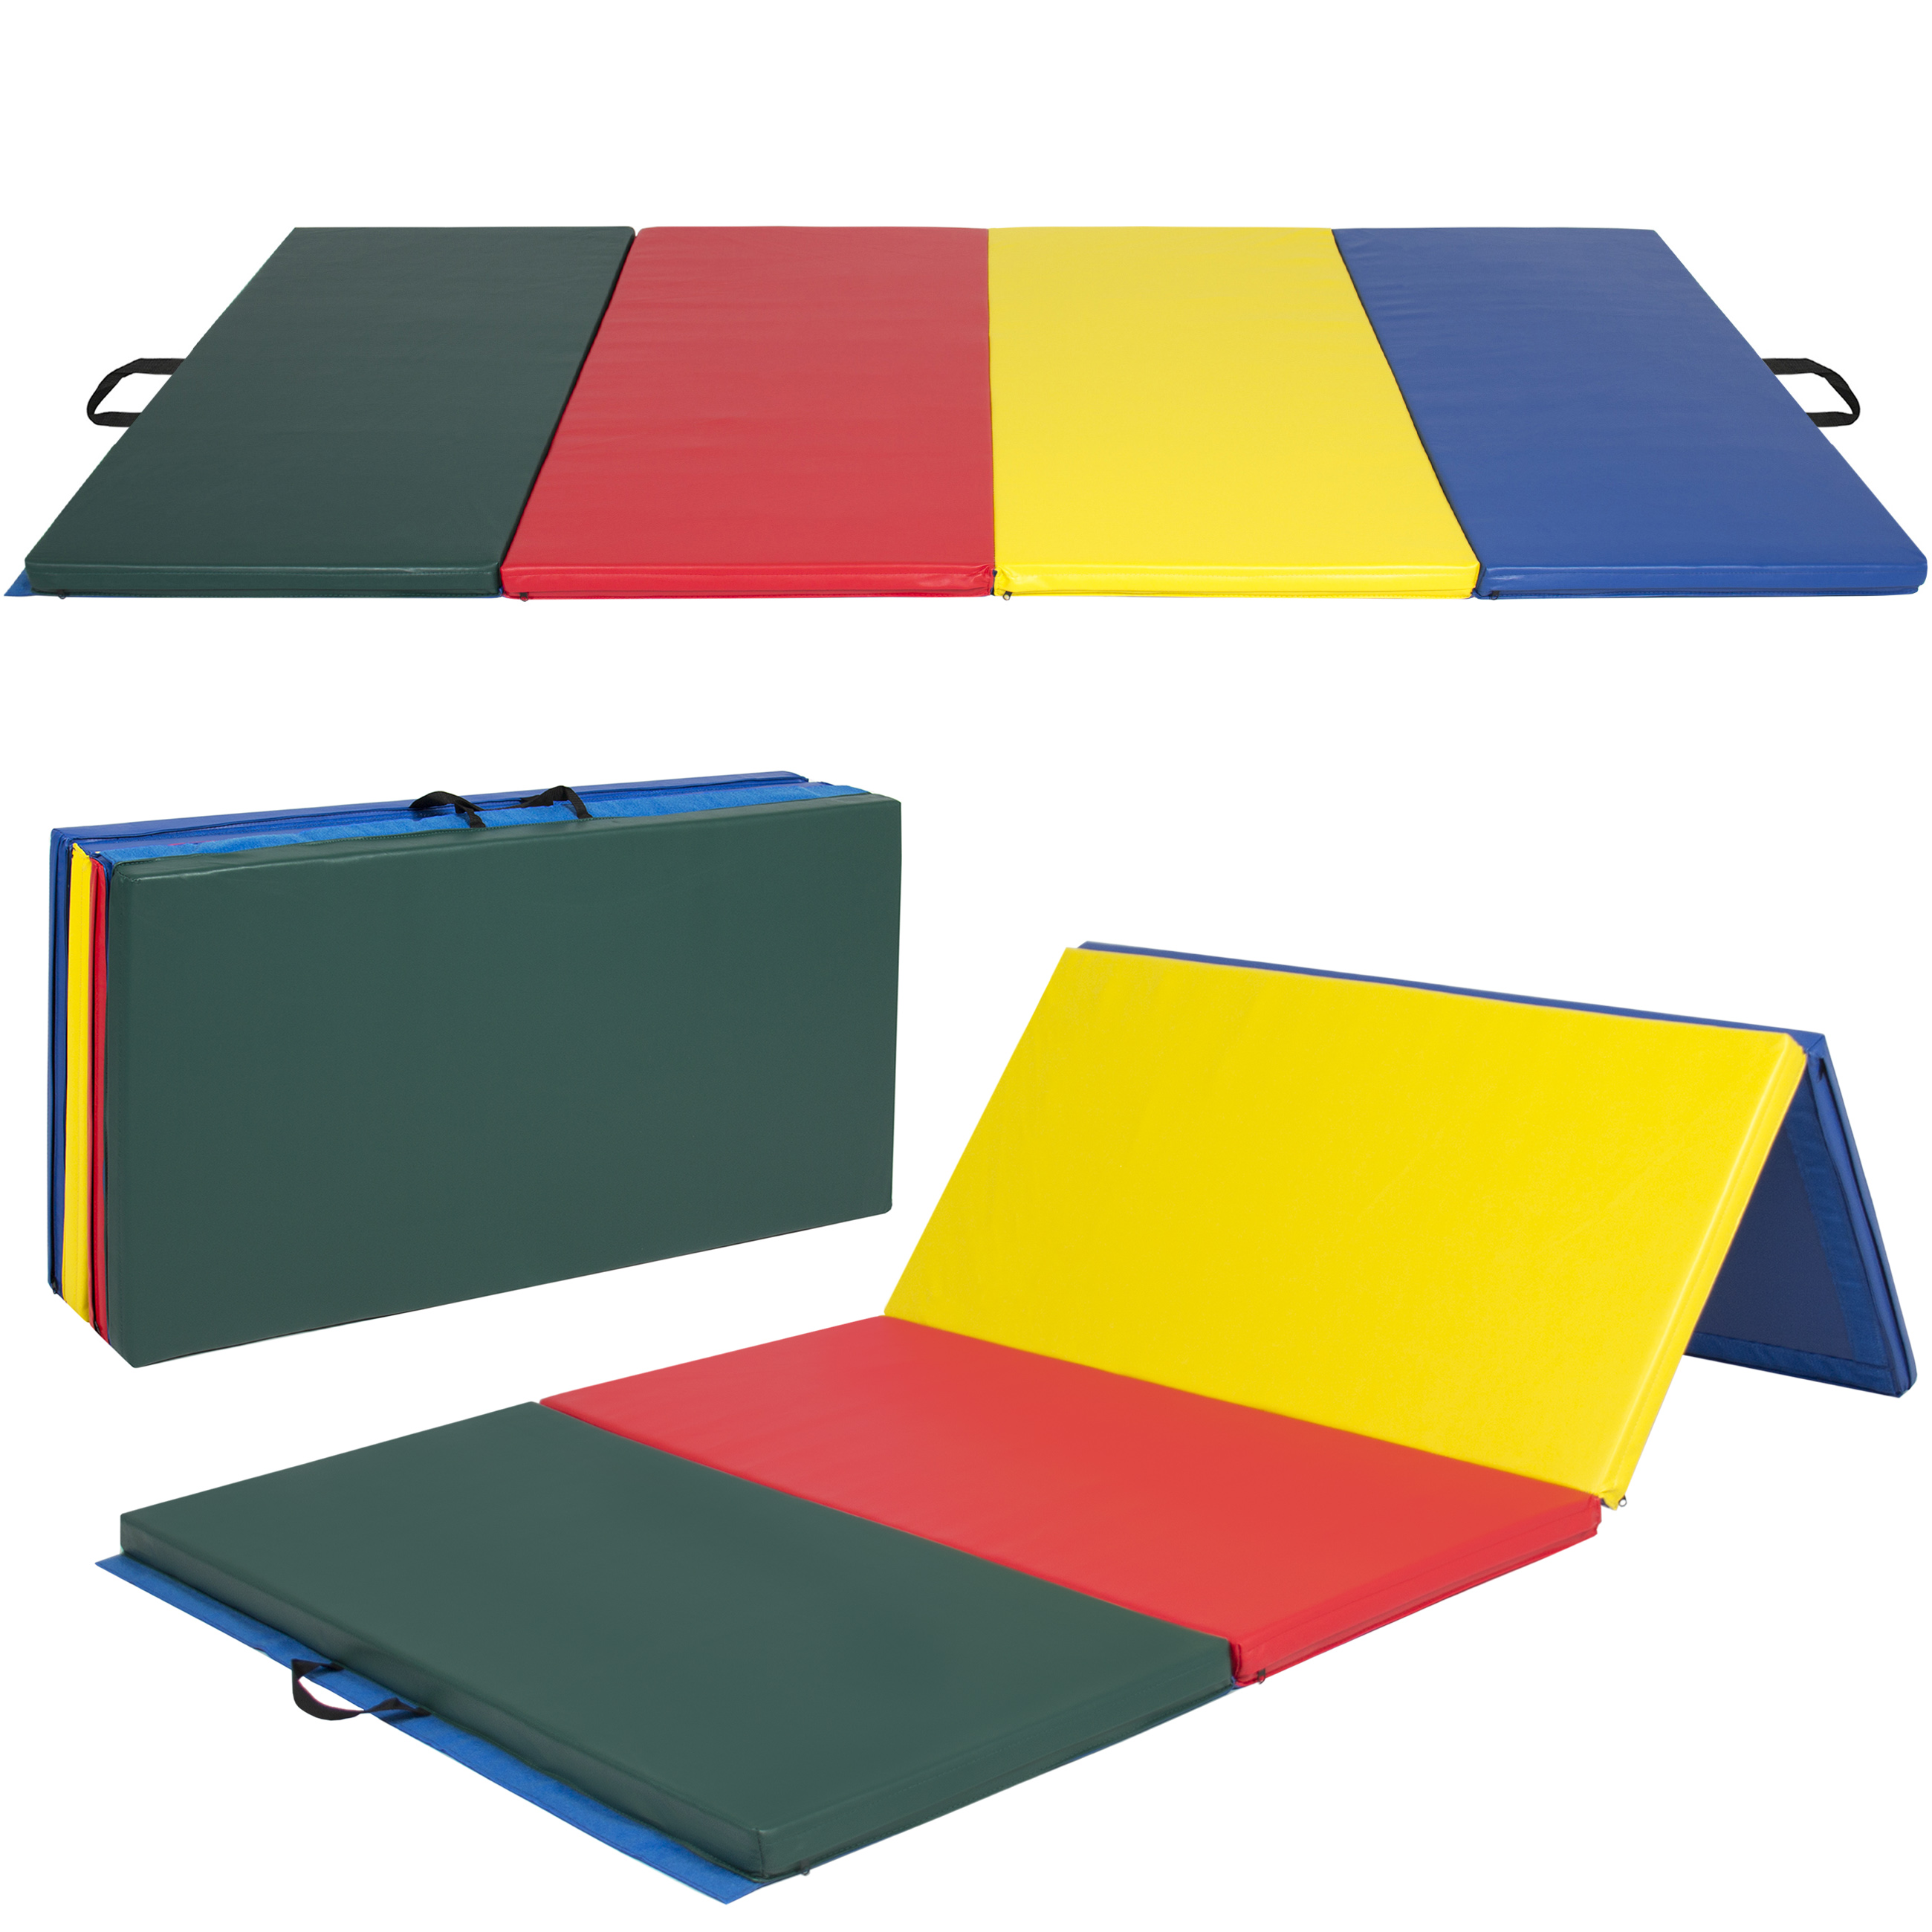 Best Choice Products 8ft Folding Exercise Gym Mat for Gymnastics, Aerobics, Yoga, Martial Arts - Multicolor